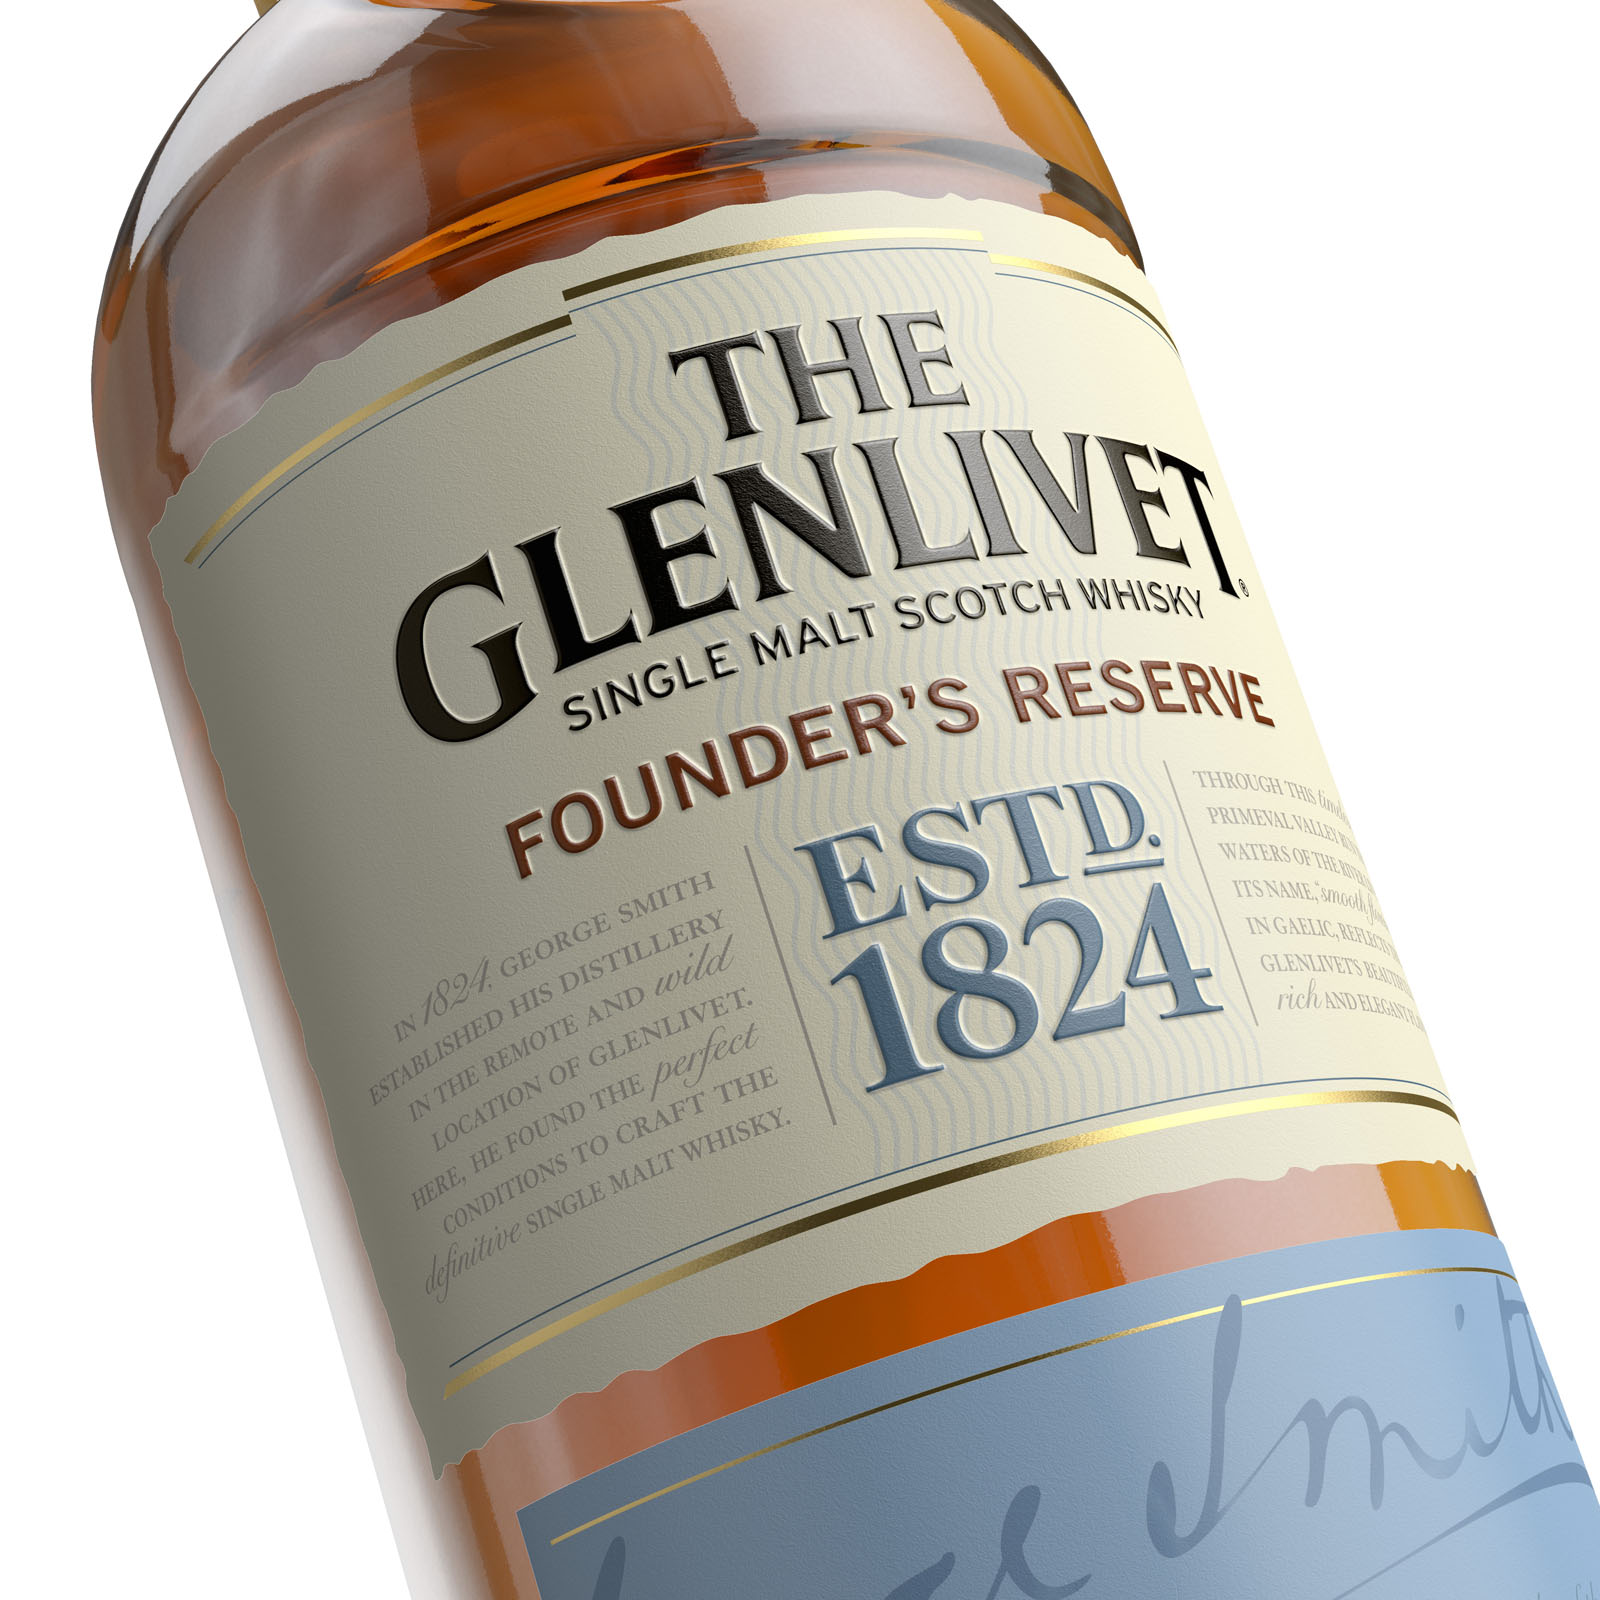 The Glenlivet Founders reserve 200 Ml